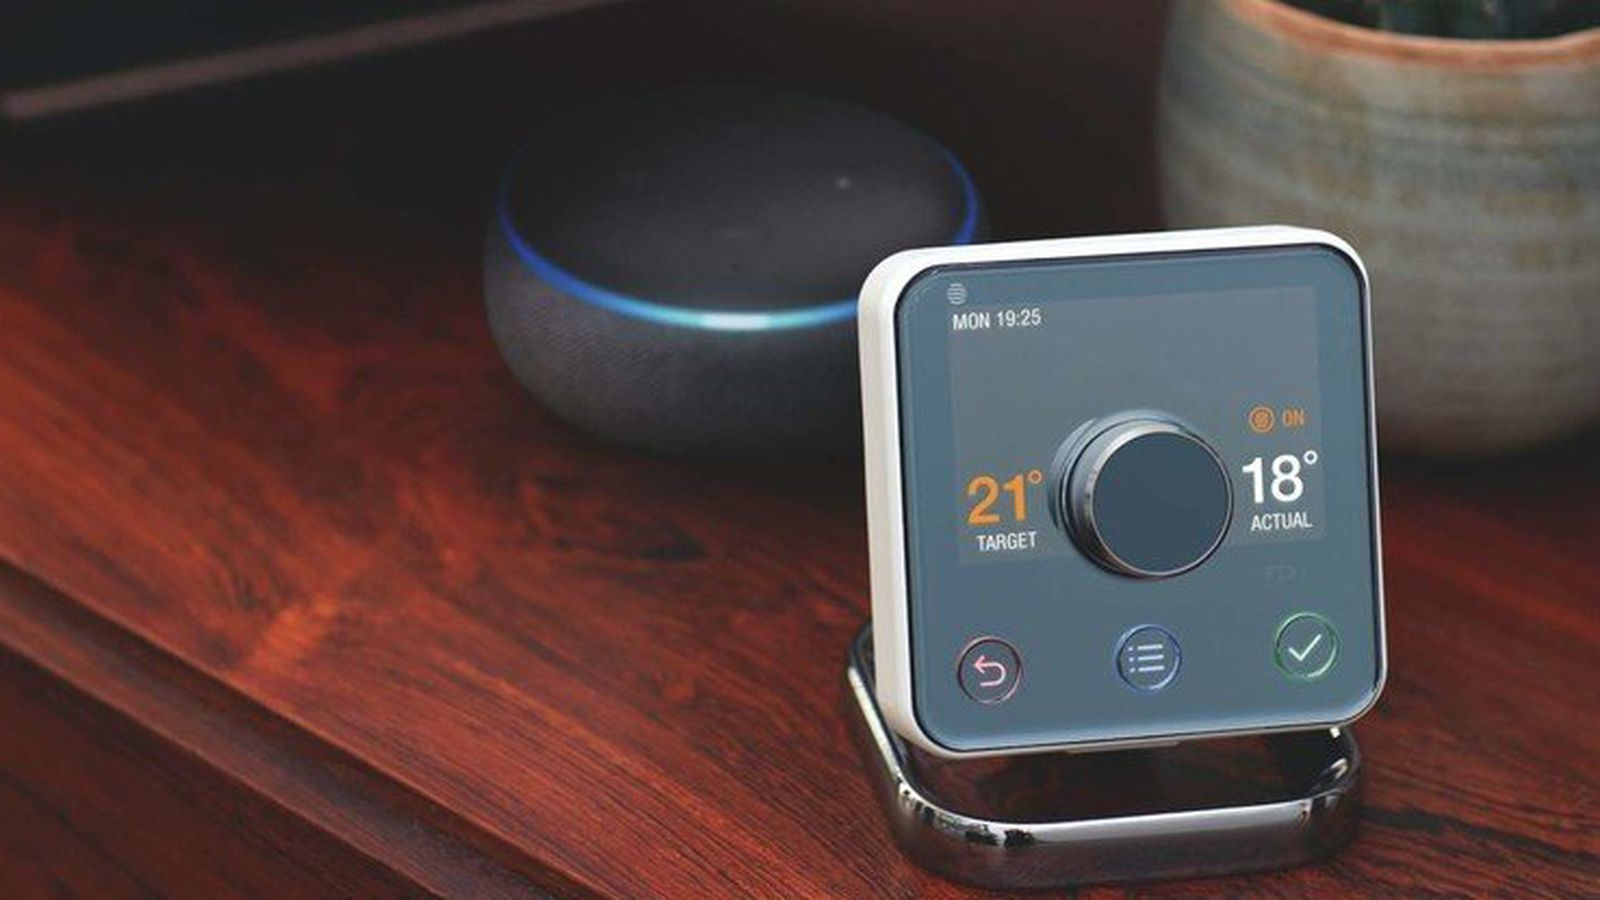 U K Smart Home Firm Hive Rolls Out Homekit Support For Active Line Of Products Macrumors